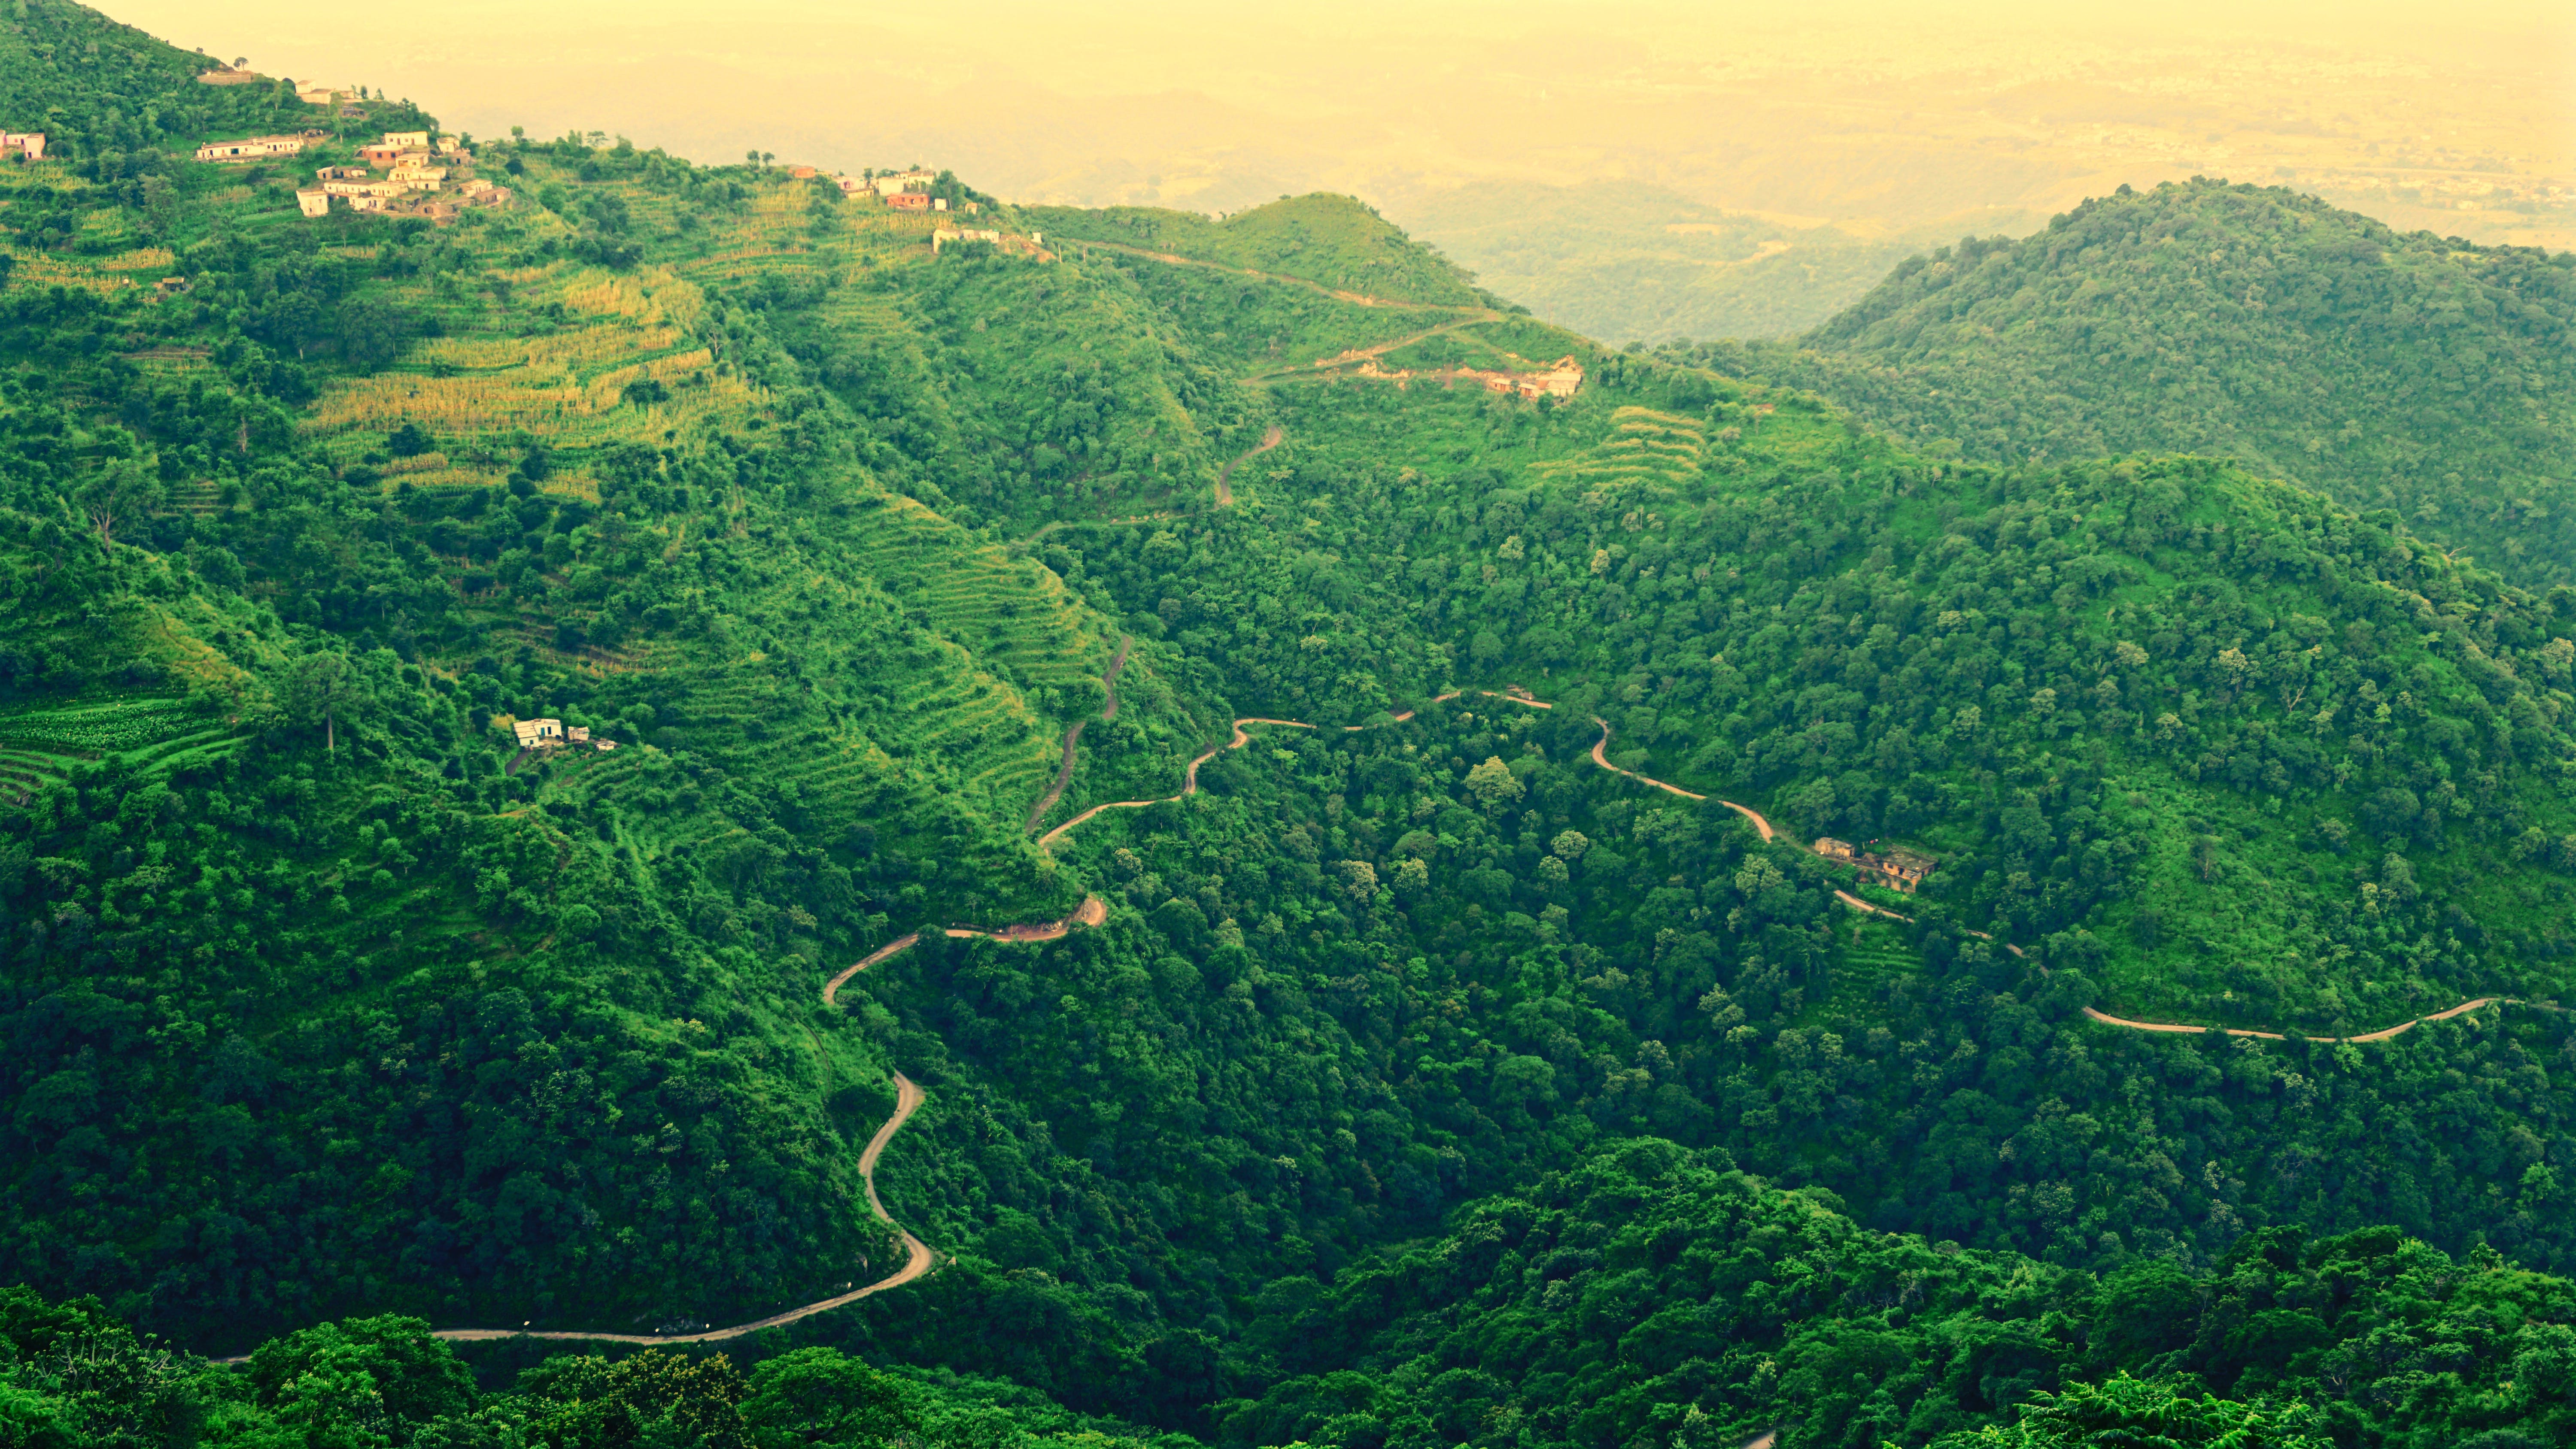 Landscape Photo of Roadway Covered in Green Trees